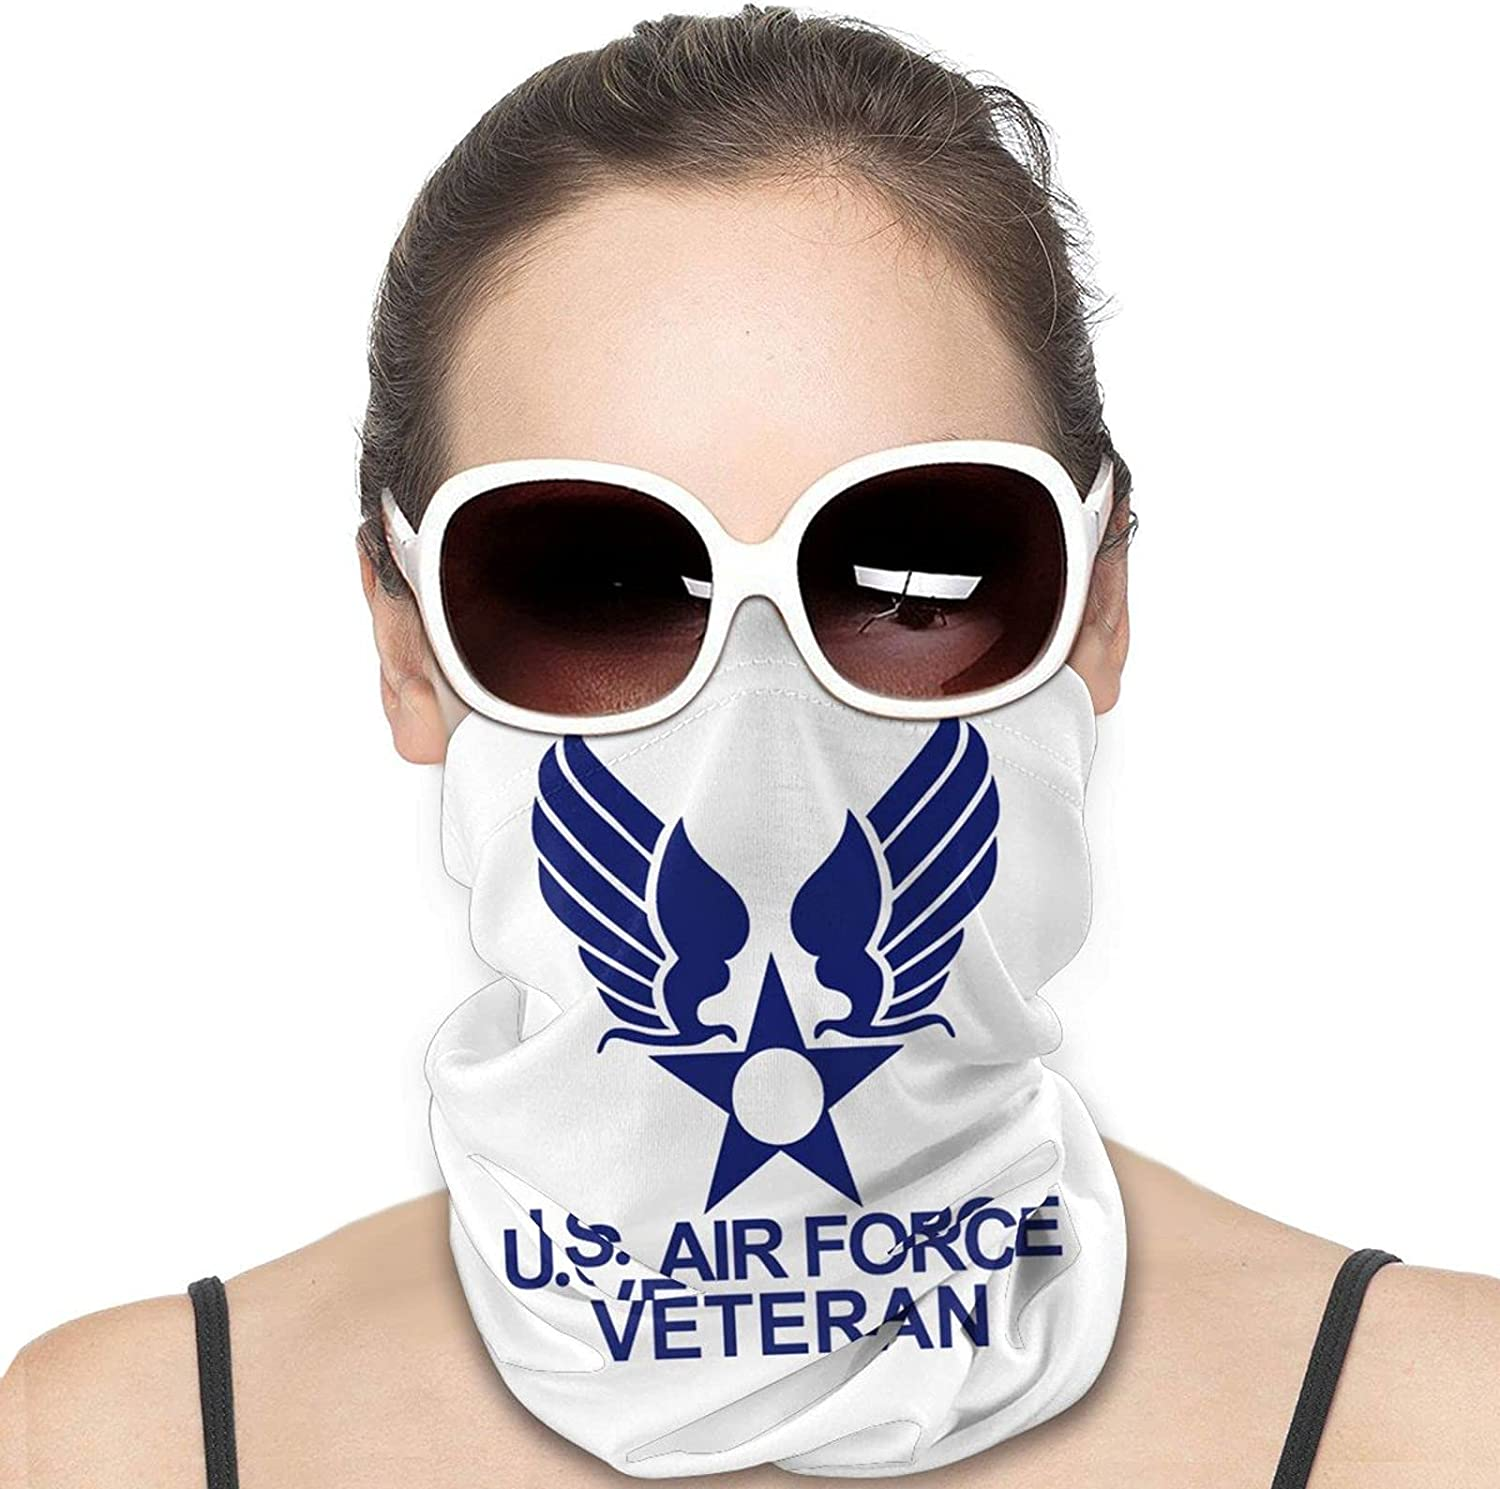 U.S. AIR FORCE VETERAN Round Neck Gaiter Bandnas Face Cover Uv Protection Prevent bask in Ice Scarf Headbands Perfect for Motorcycle Cycling Running Festival Raves Outdoors